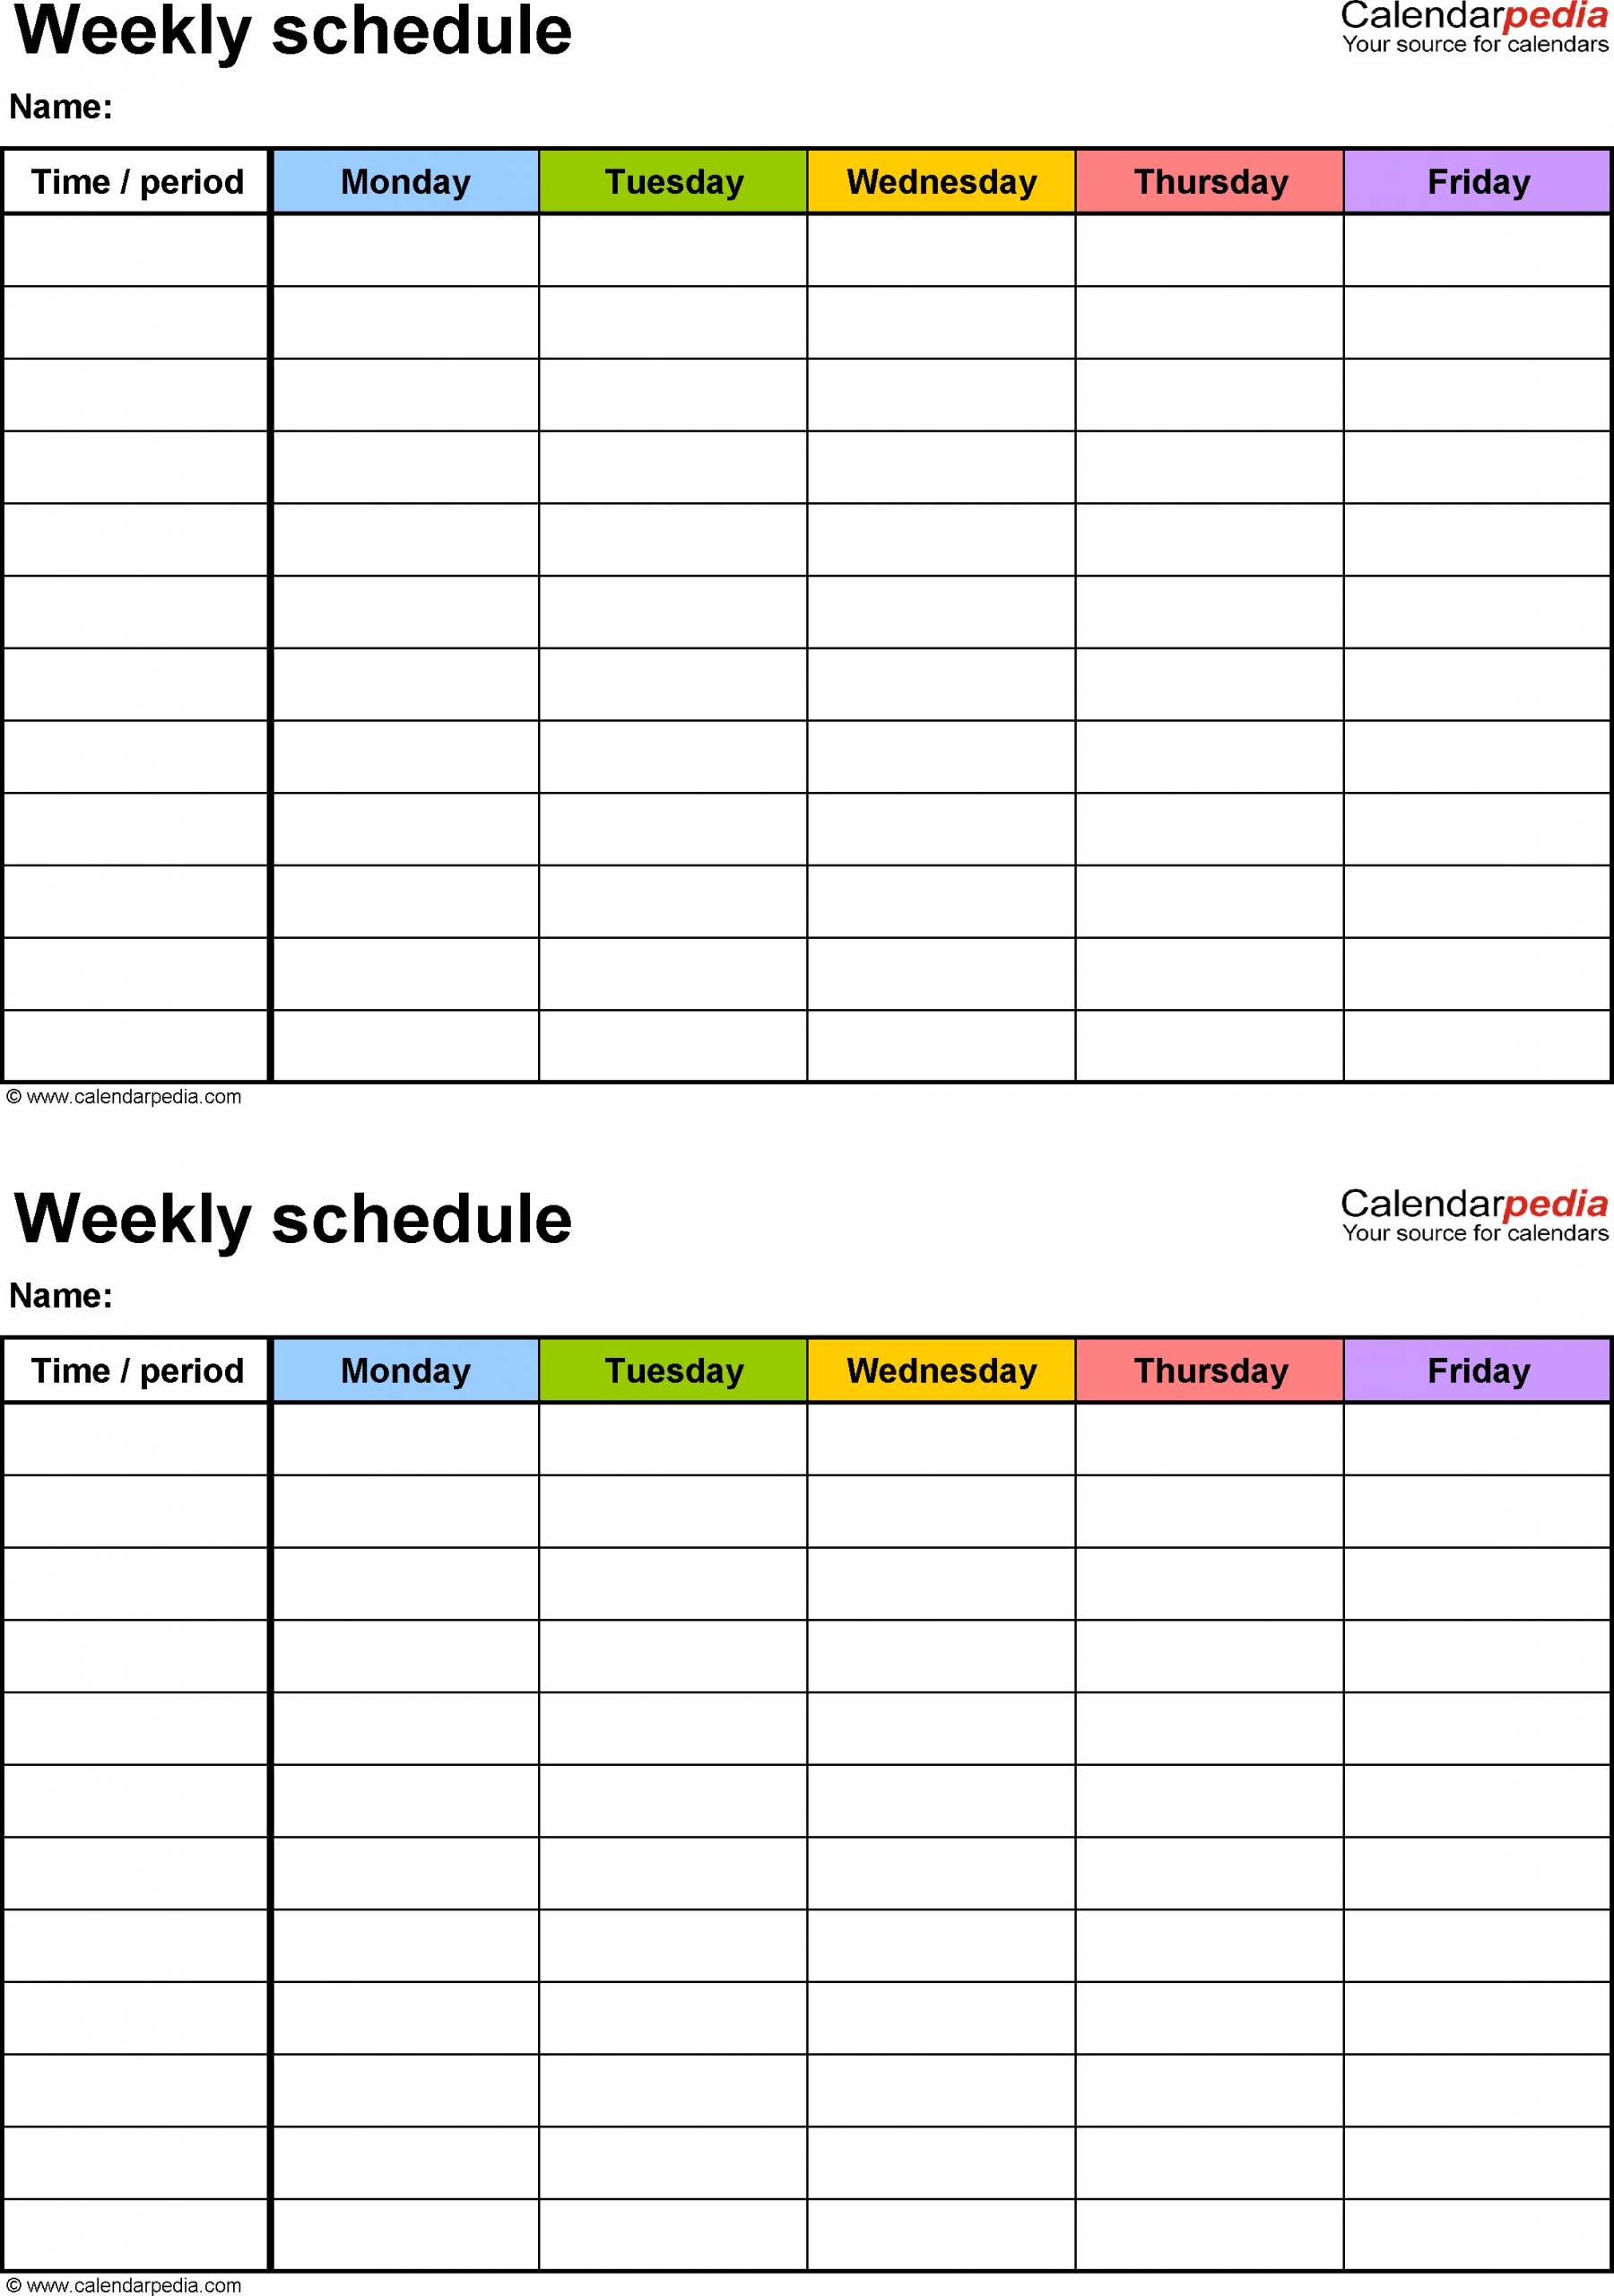 Monday To Friday Monthly Calendar Template | Calendar Monday To Friday Schedule